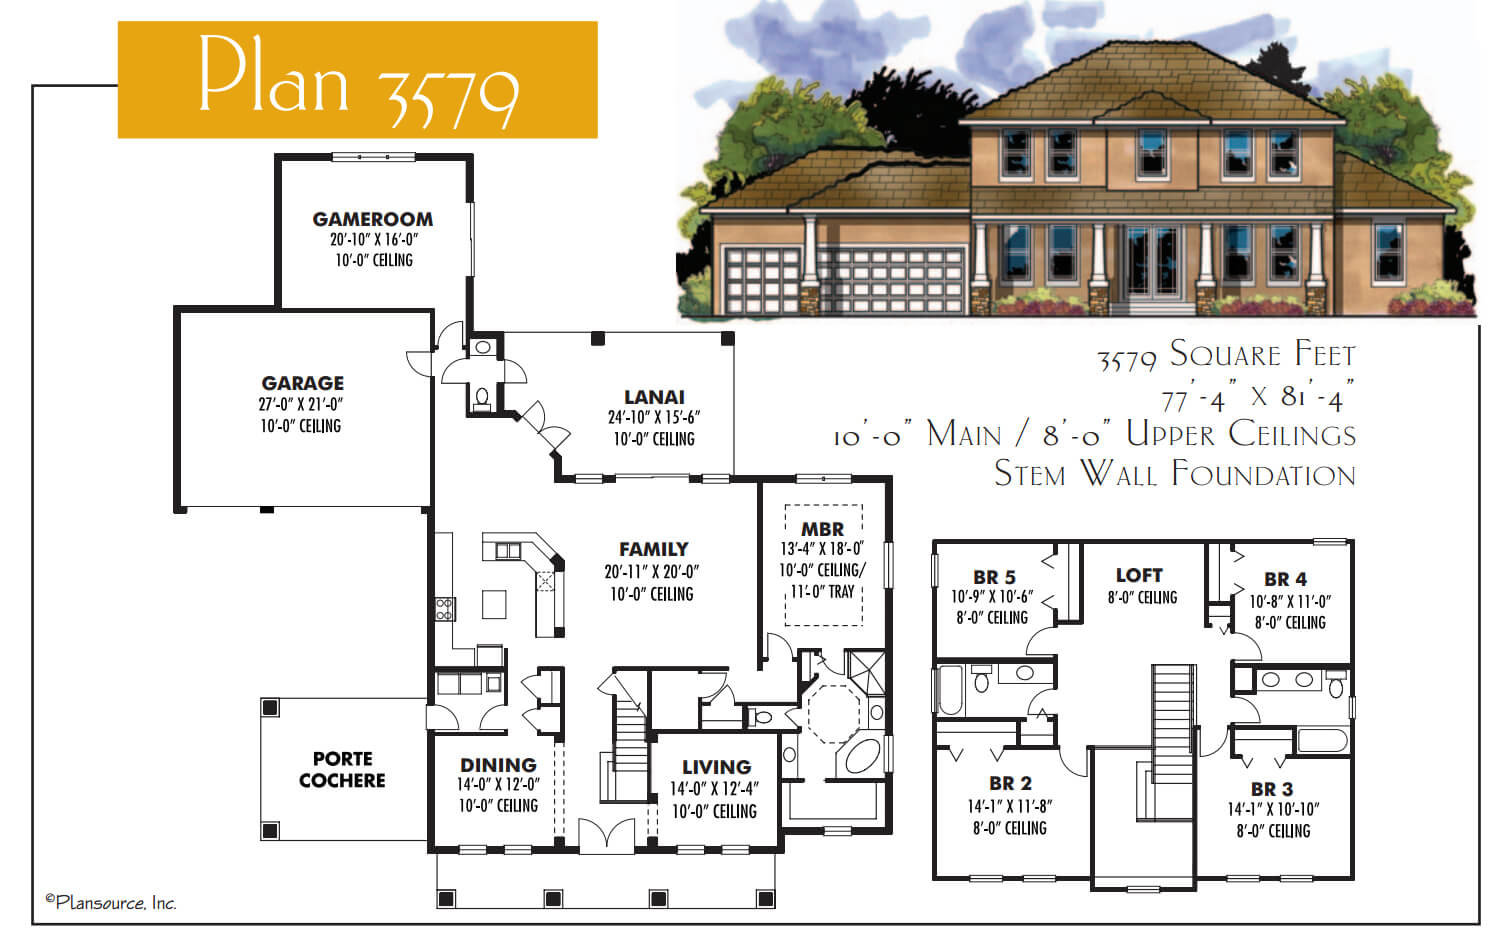 Floor Plans,3,501 SQ FT TO 4,000 SQ FT,1099